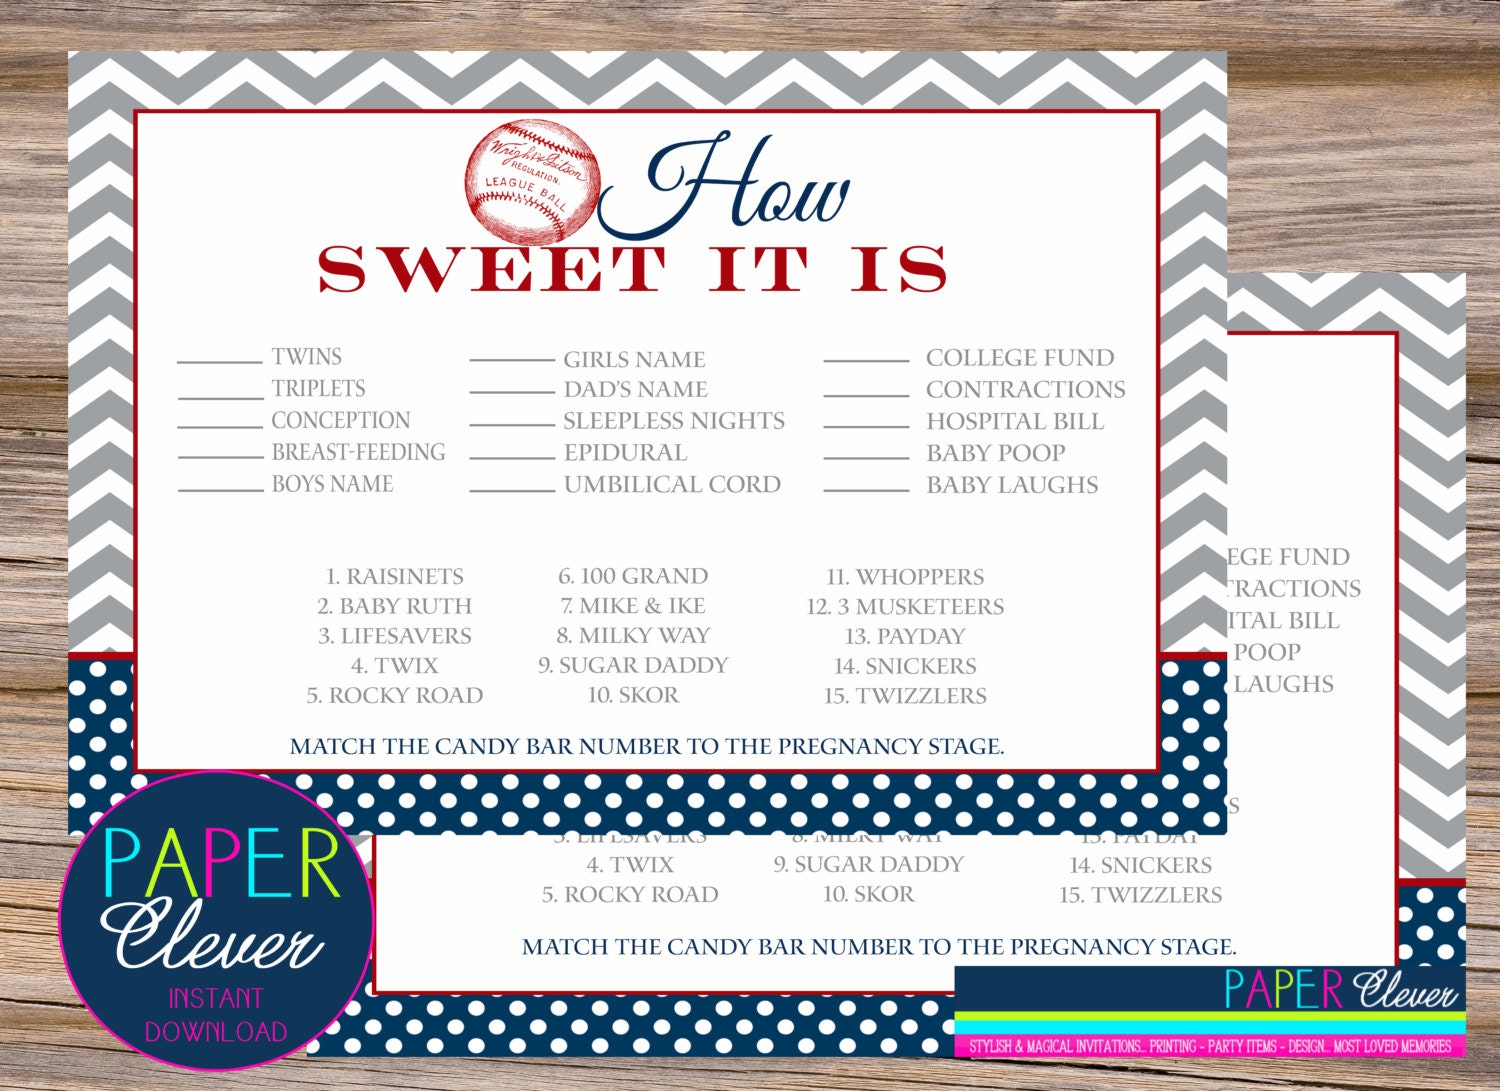 baseball candy bar stages baby shower games navy blue and red